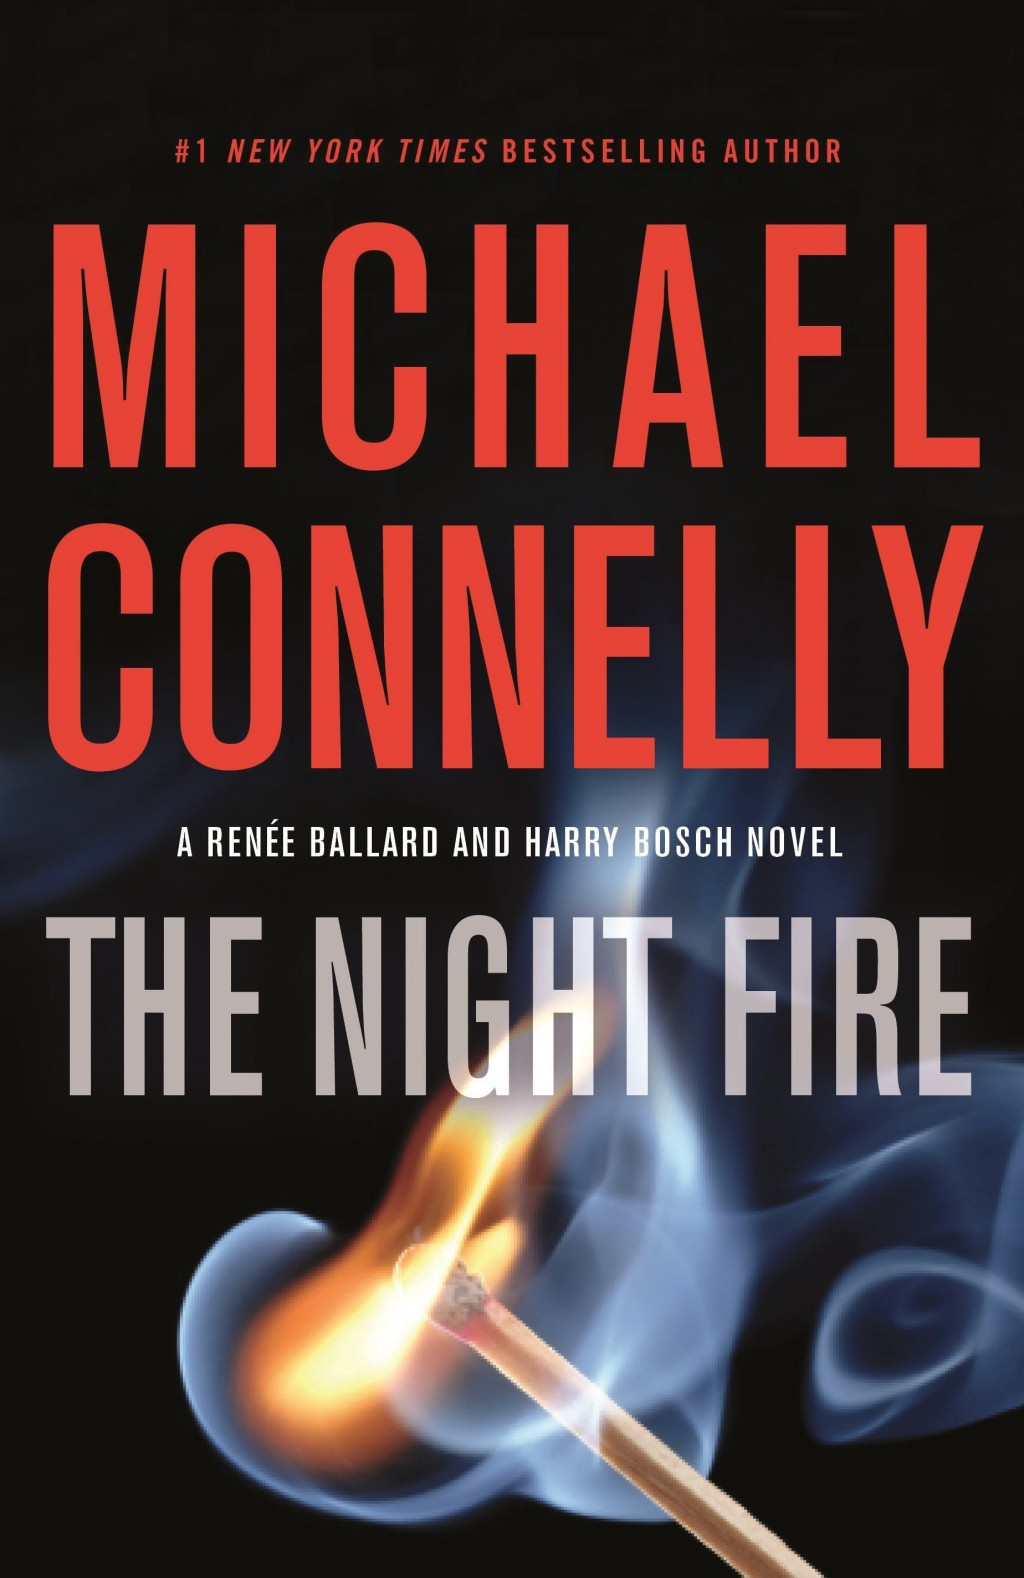 """This cover image released by Little, Brown and Co. shows """"The Night Fire,"""" by Michael Connelly. (Little, Brown and Co. via AP)"""